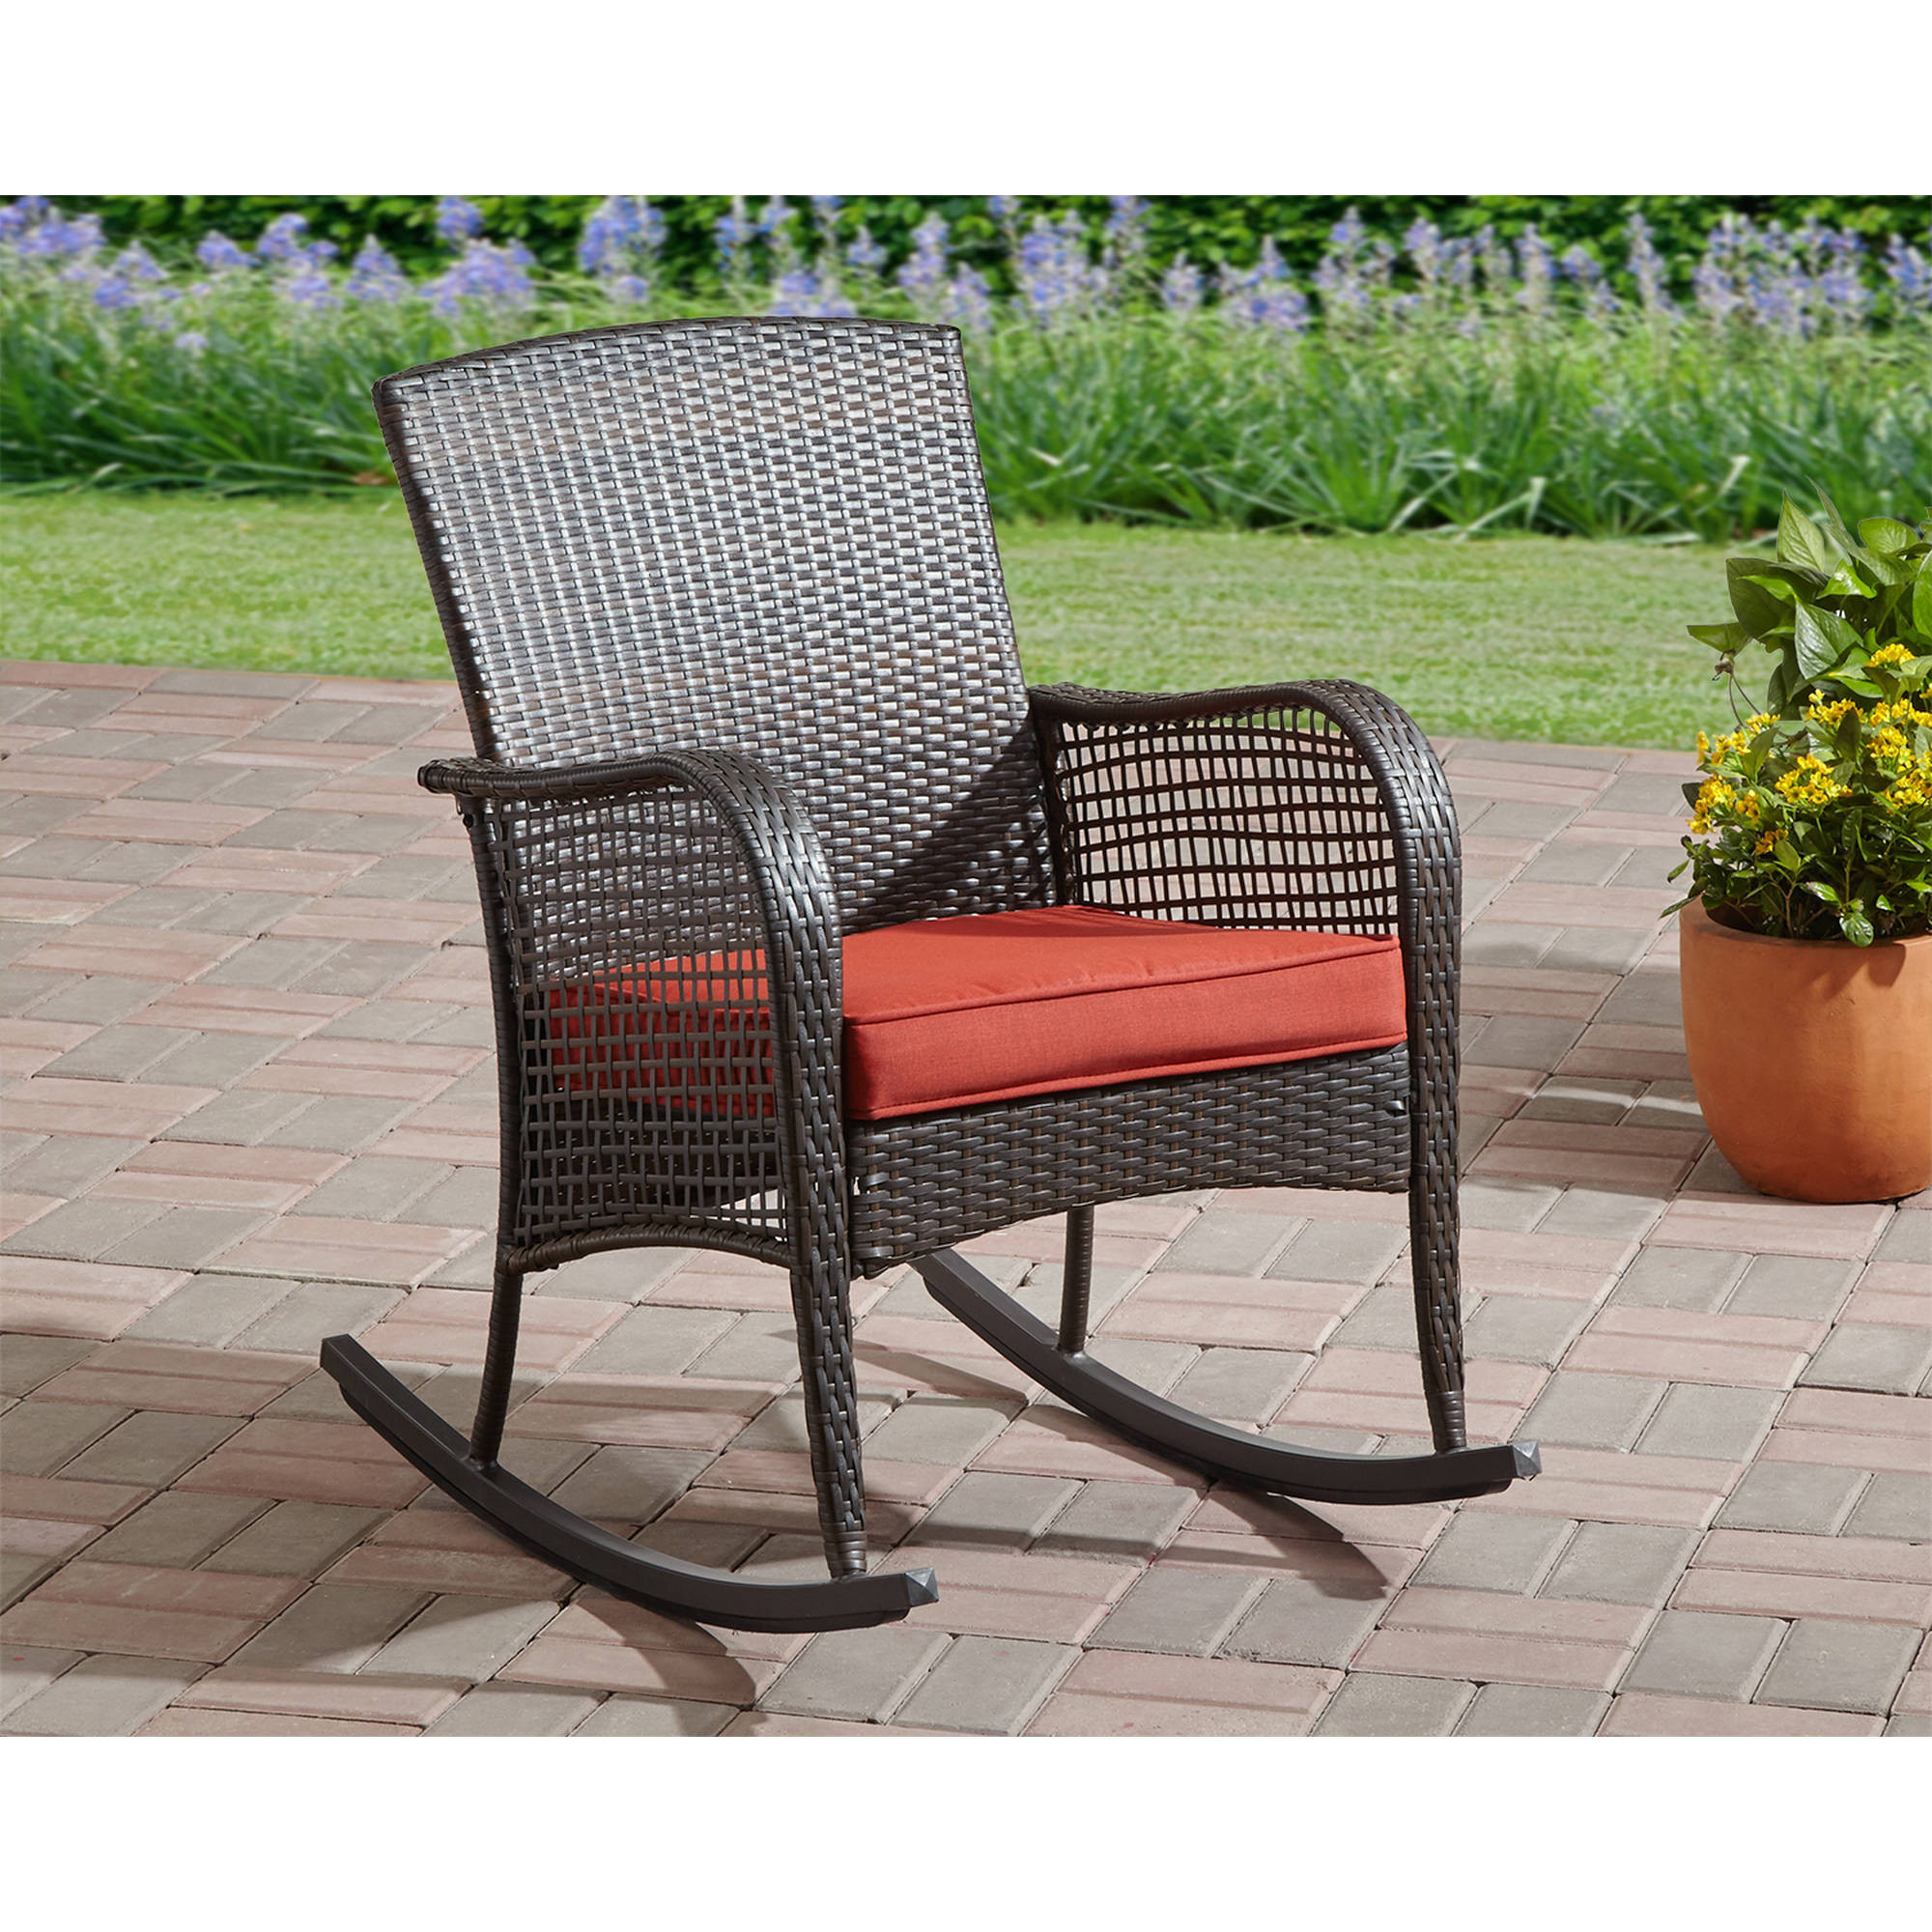 Best ideas about Patio Furniture Deals . Save or Pin Patio Furniture Walmart Black Friday Deals 2017 2015 Now.